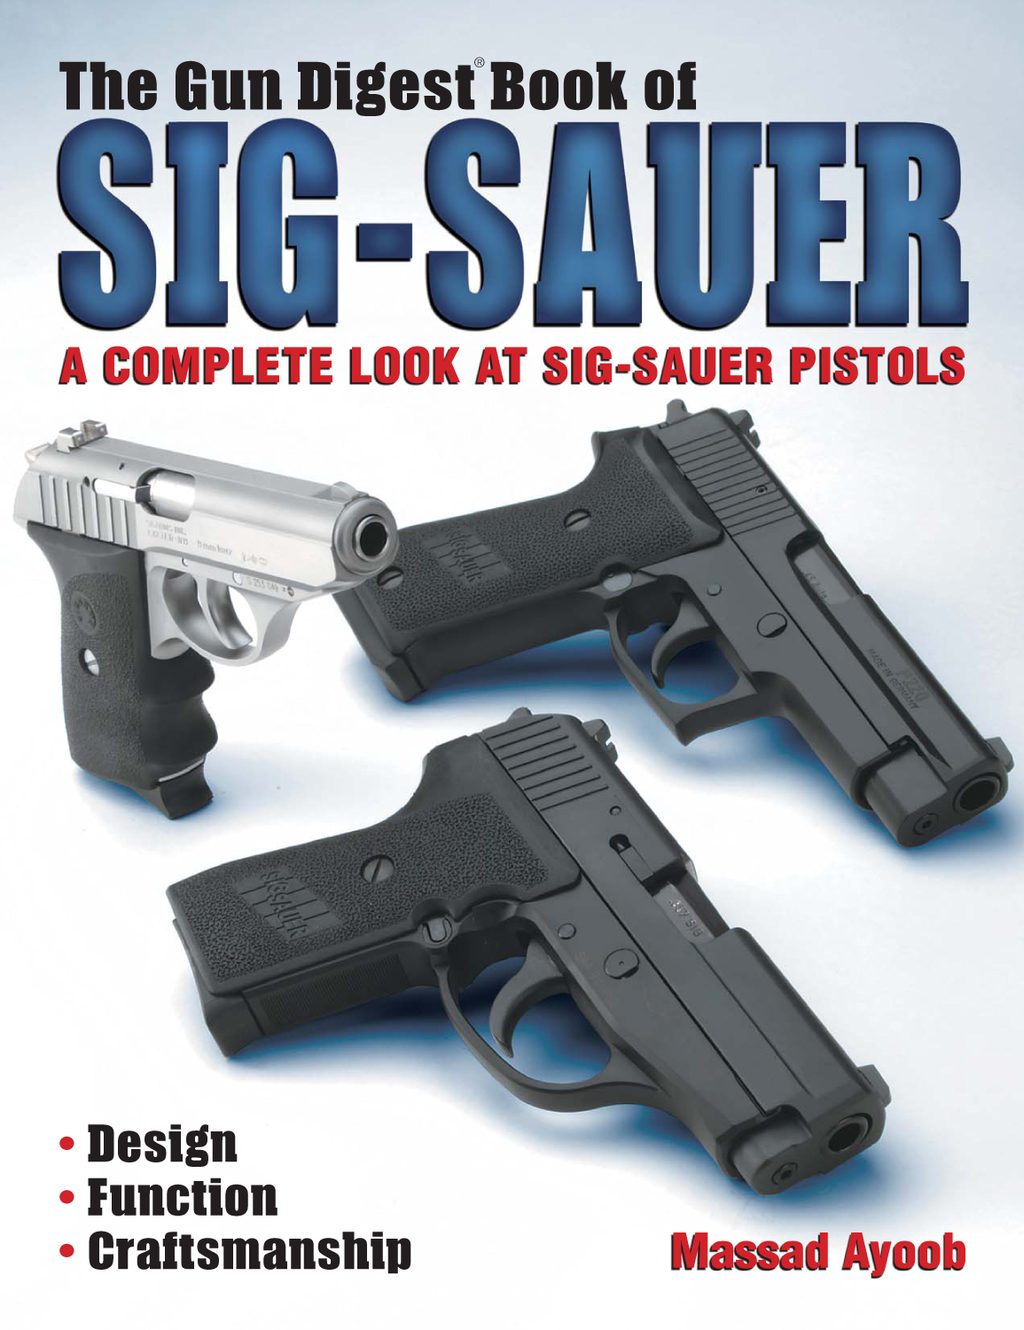 The Gun Digest Book of Sig-Sauer A Complete Look At Sig-Sauer Pistols